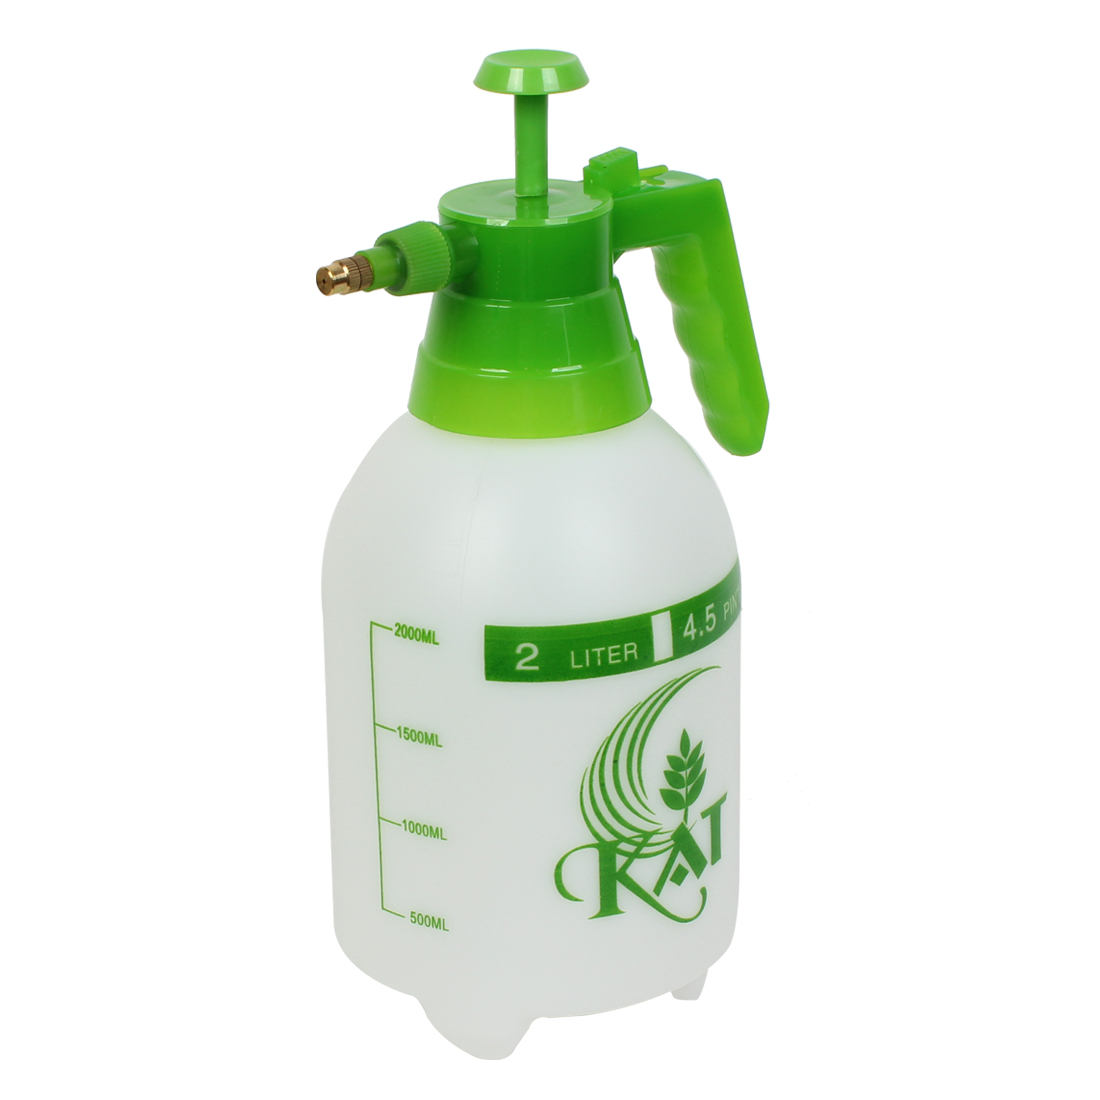 2L Gold Tone Nozzle Spraying Bottle Washing Pressure Sprayer Green White for Car Auto